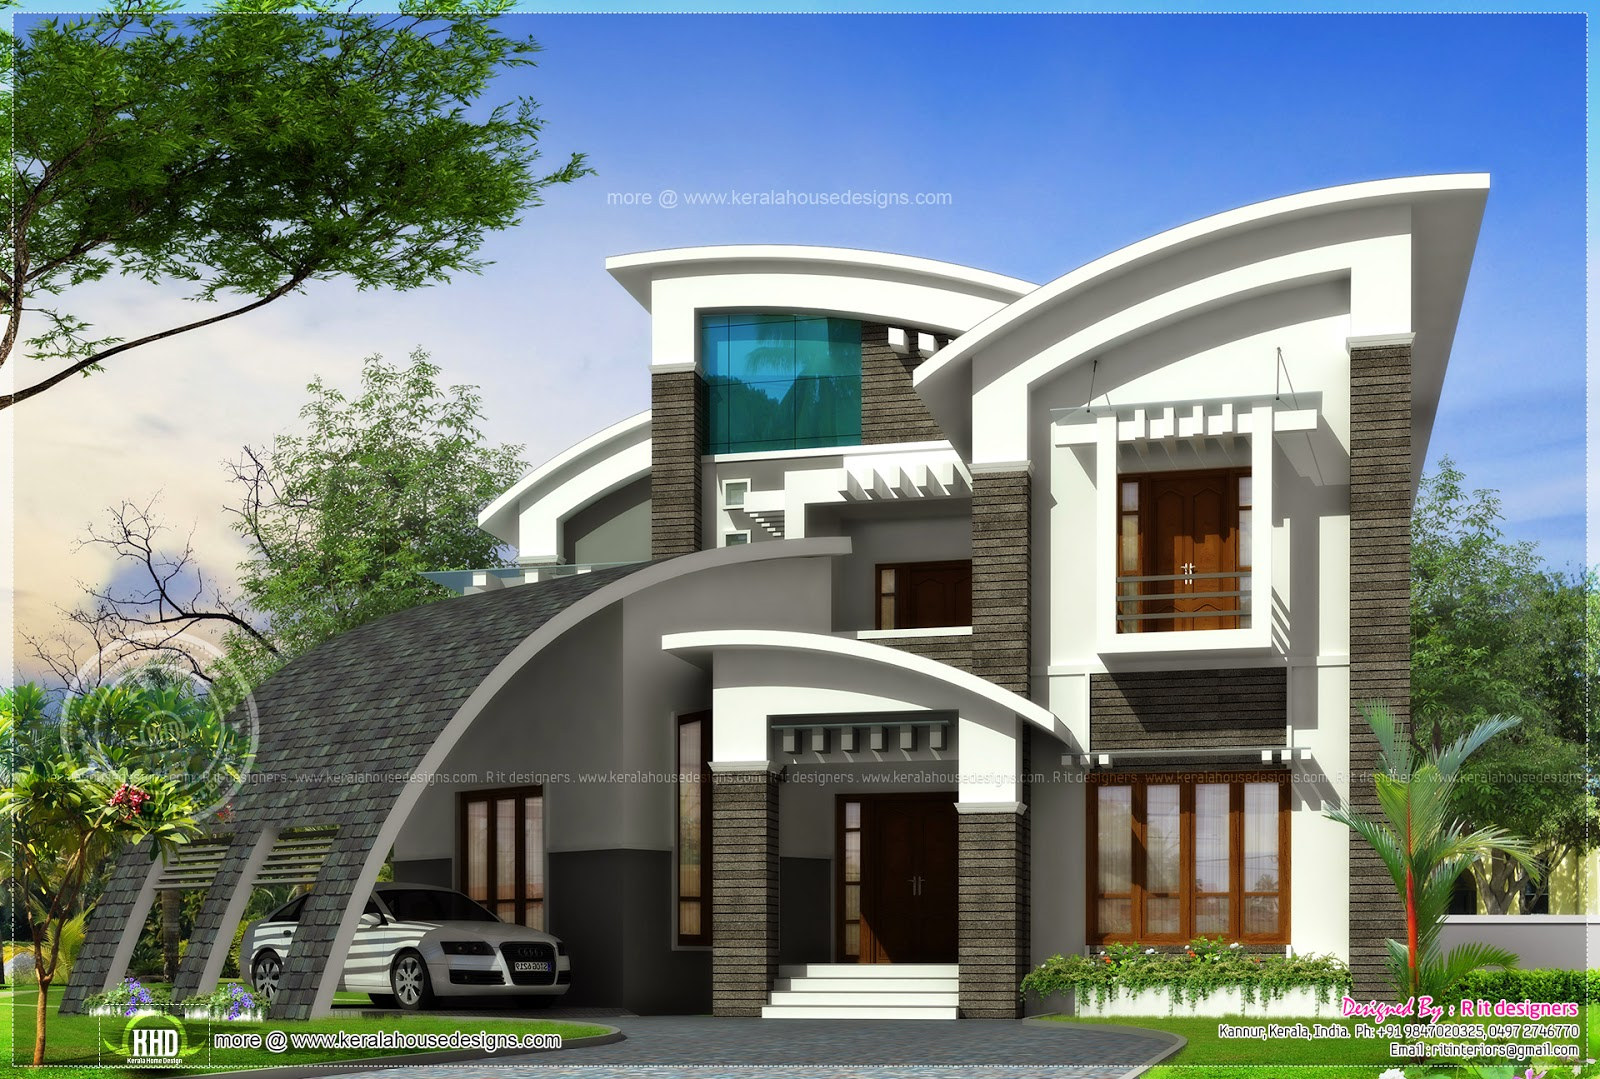 Super luxury ultra modern house design kerala home for House design service